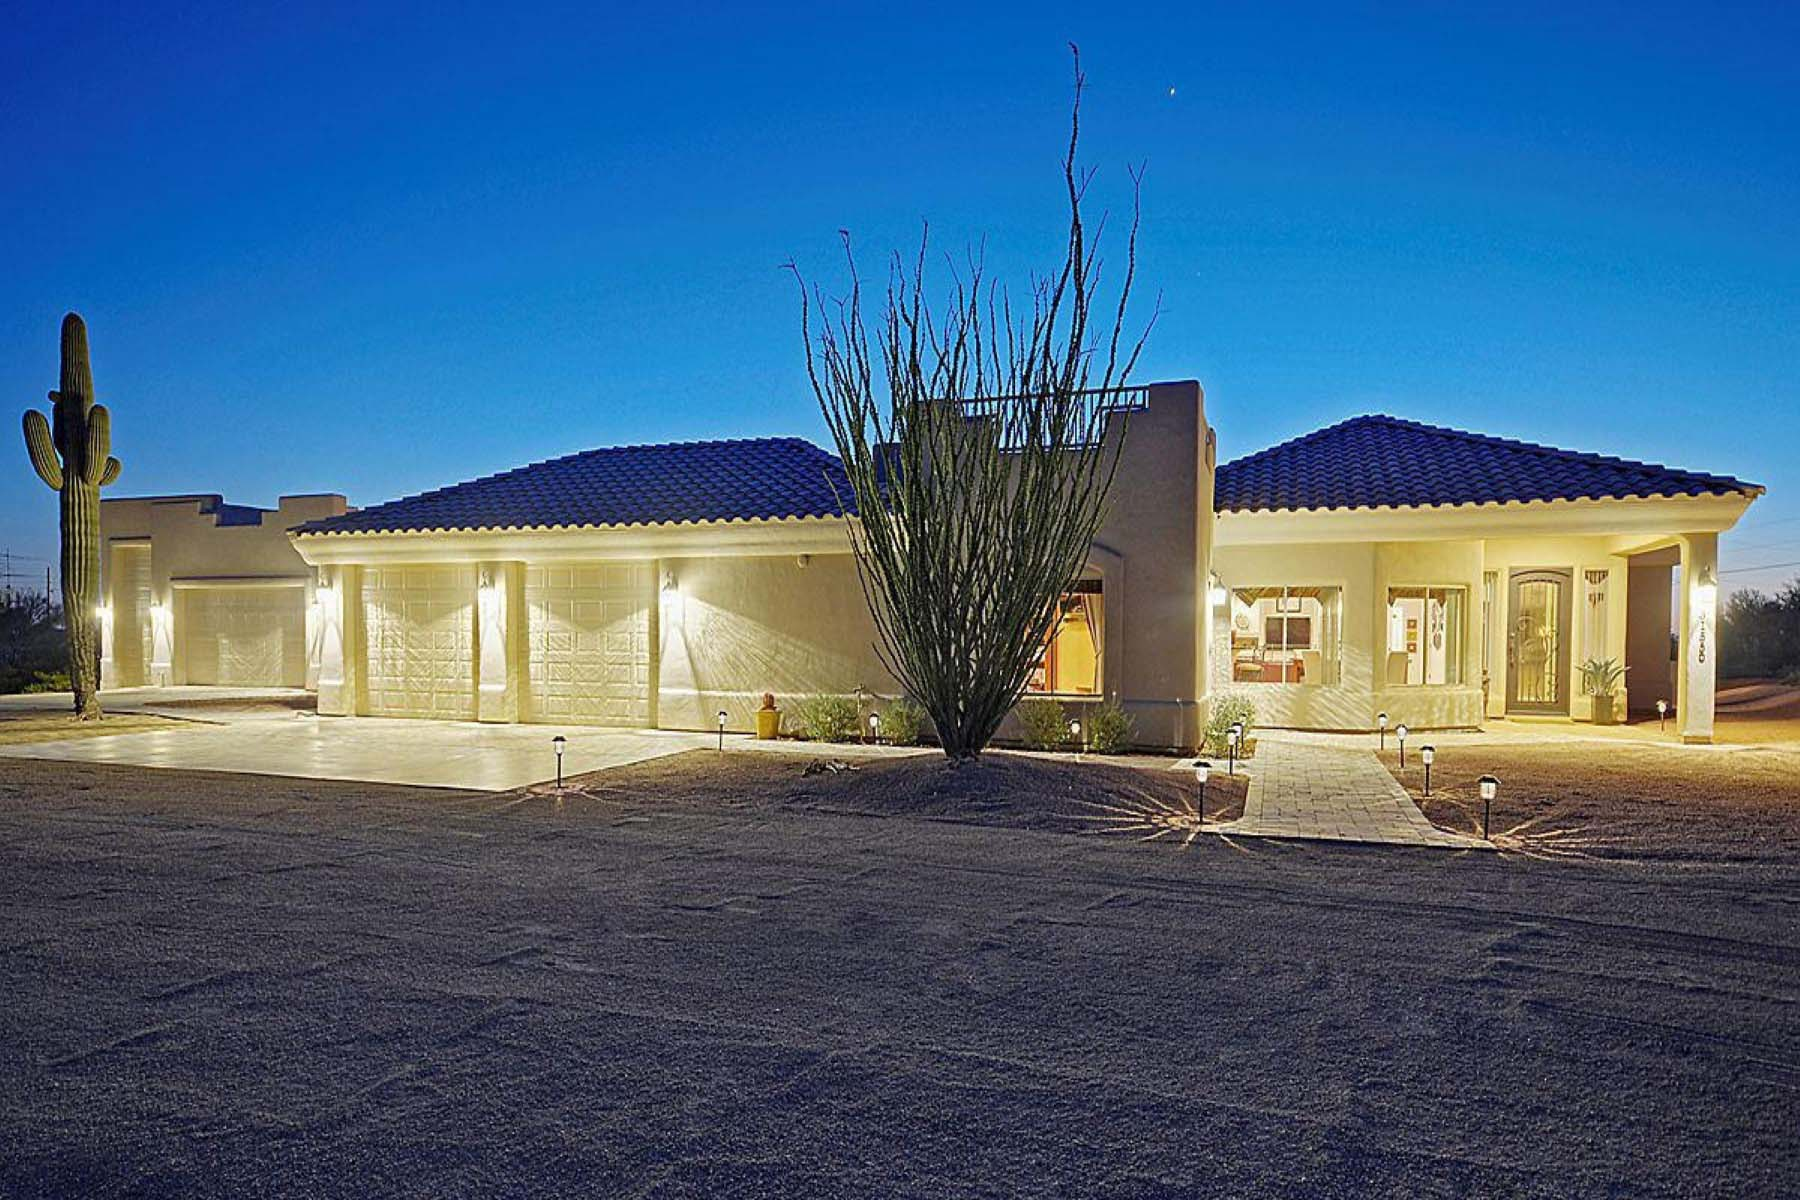 Single Family Home for Sale at Beautiful custom home on 2.5 acres. 31550 N 70TH ST Scottsdale, Arizona 85266 United States